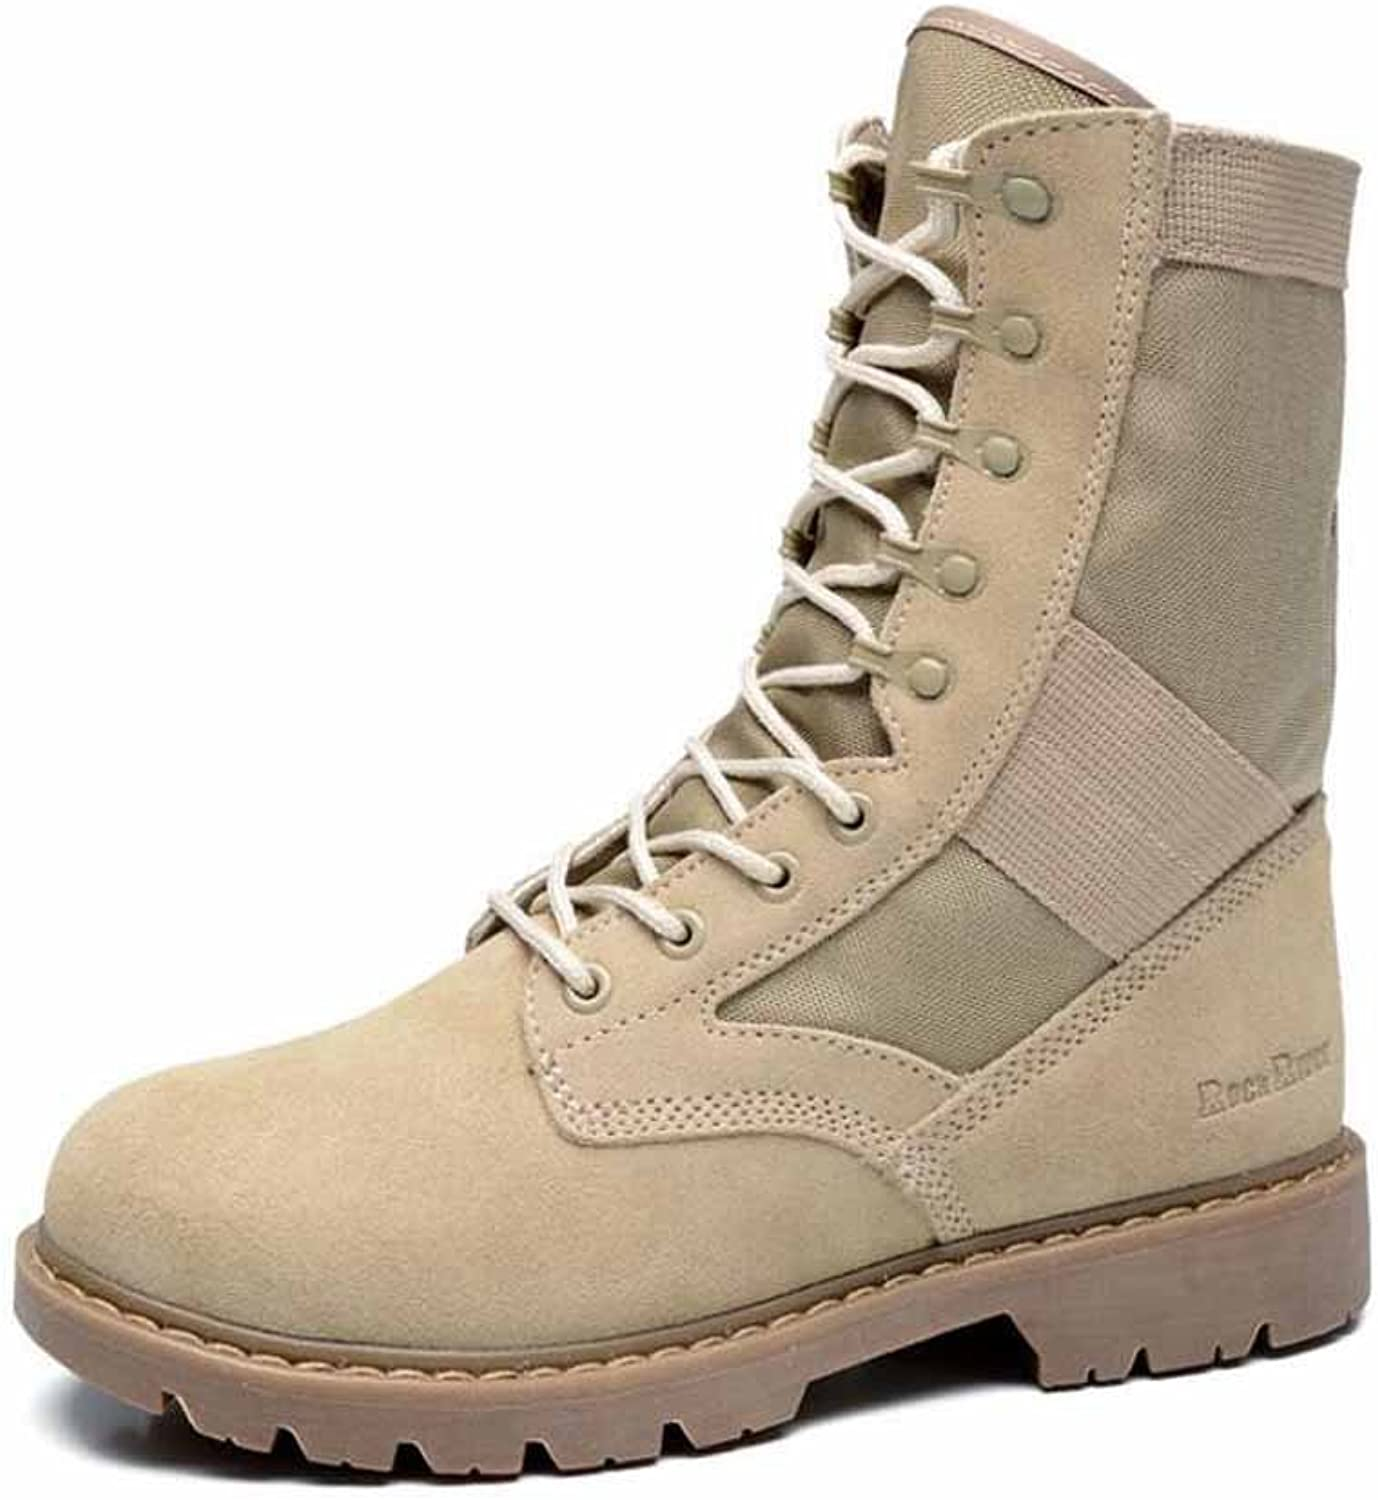 SHIXRAN Men Breathable Tactical Boots Desert Army Jungle Boots Lace Up Camouflage Boots High Rise Outdoor Boots Walking Hiking